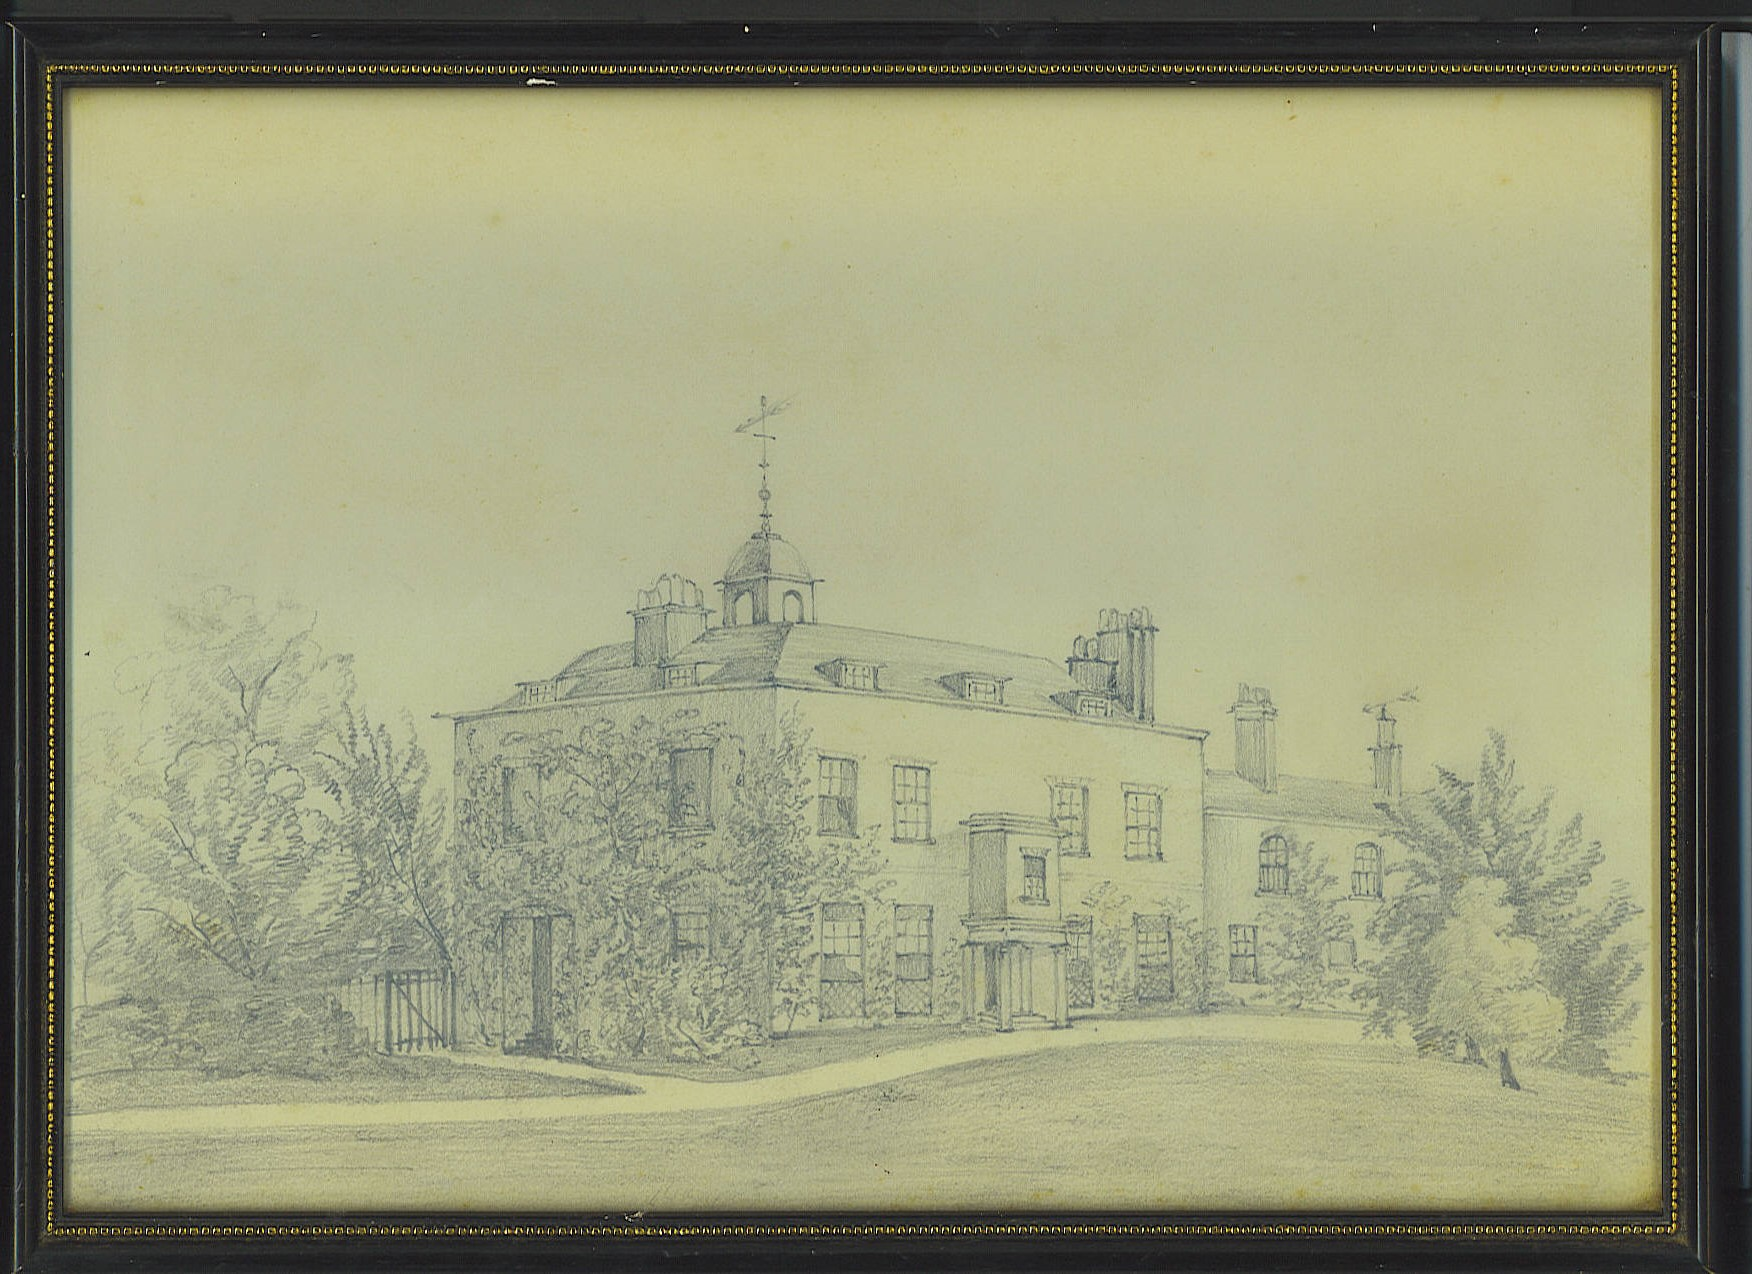 Sketch of Bell House made by one of Anthony Harding's family